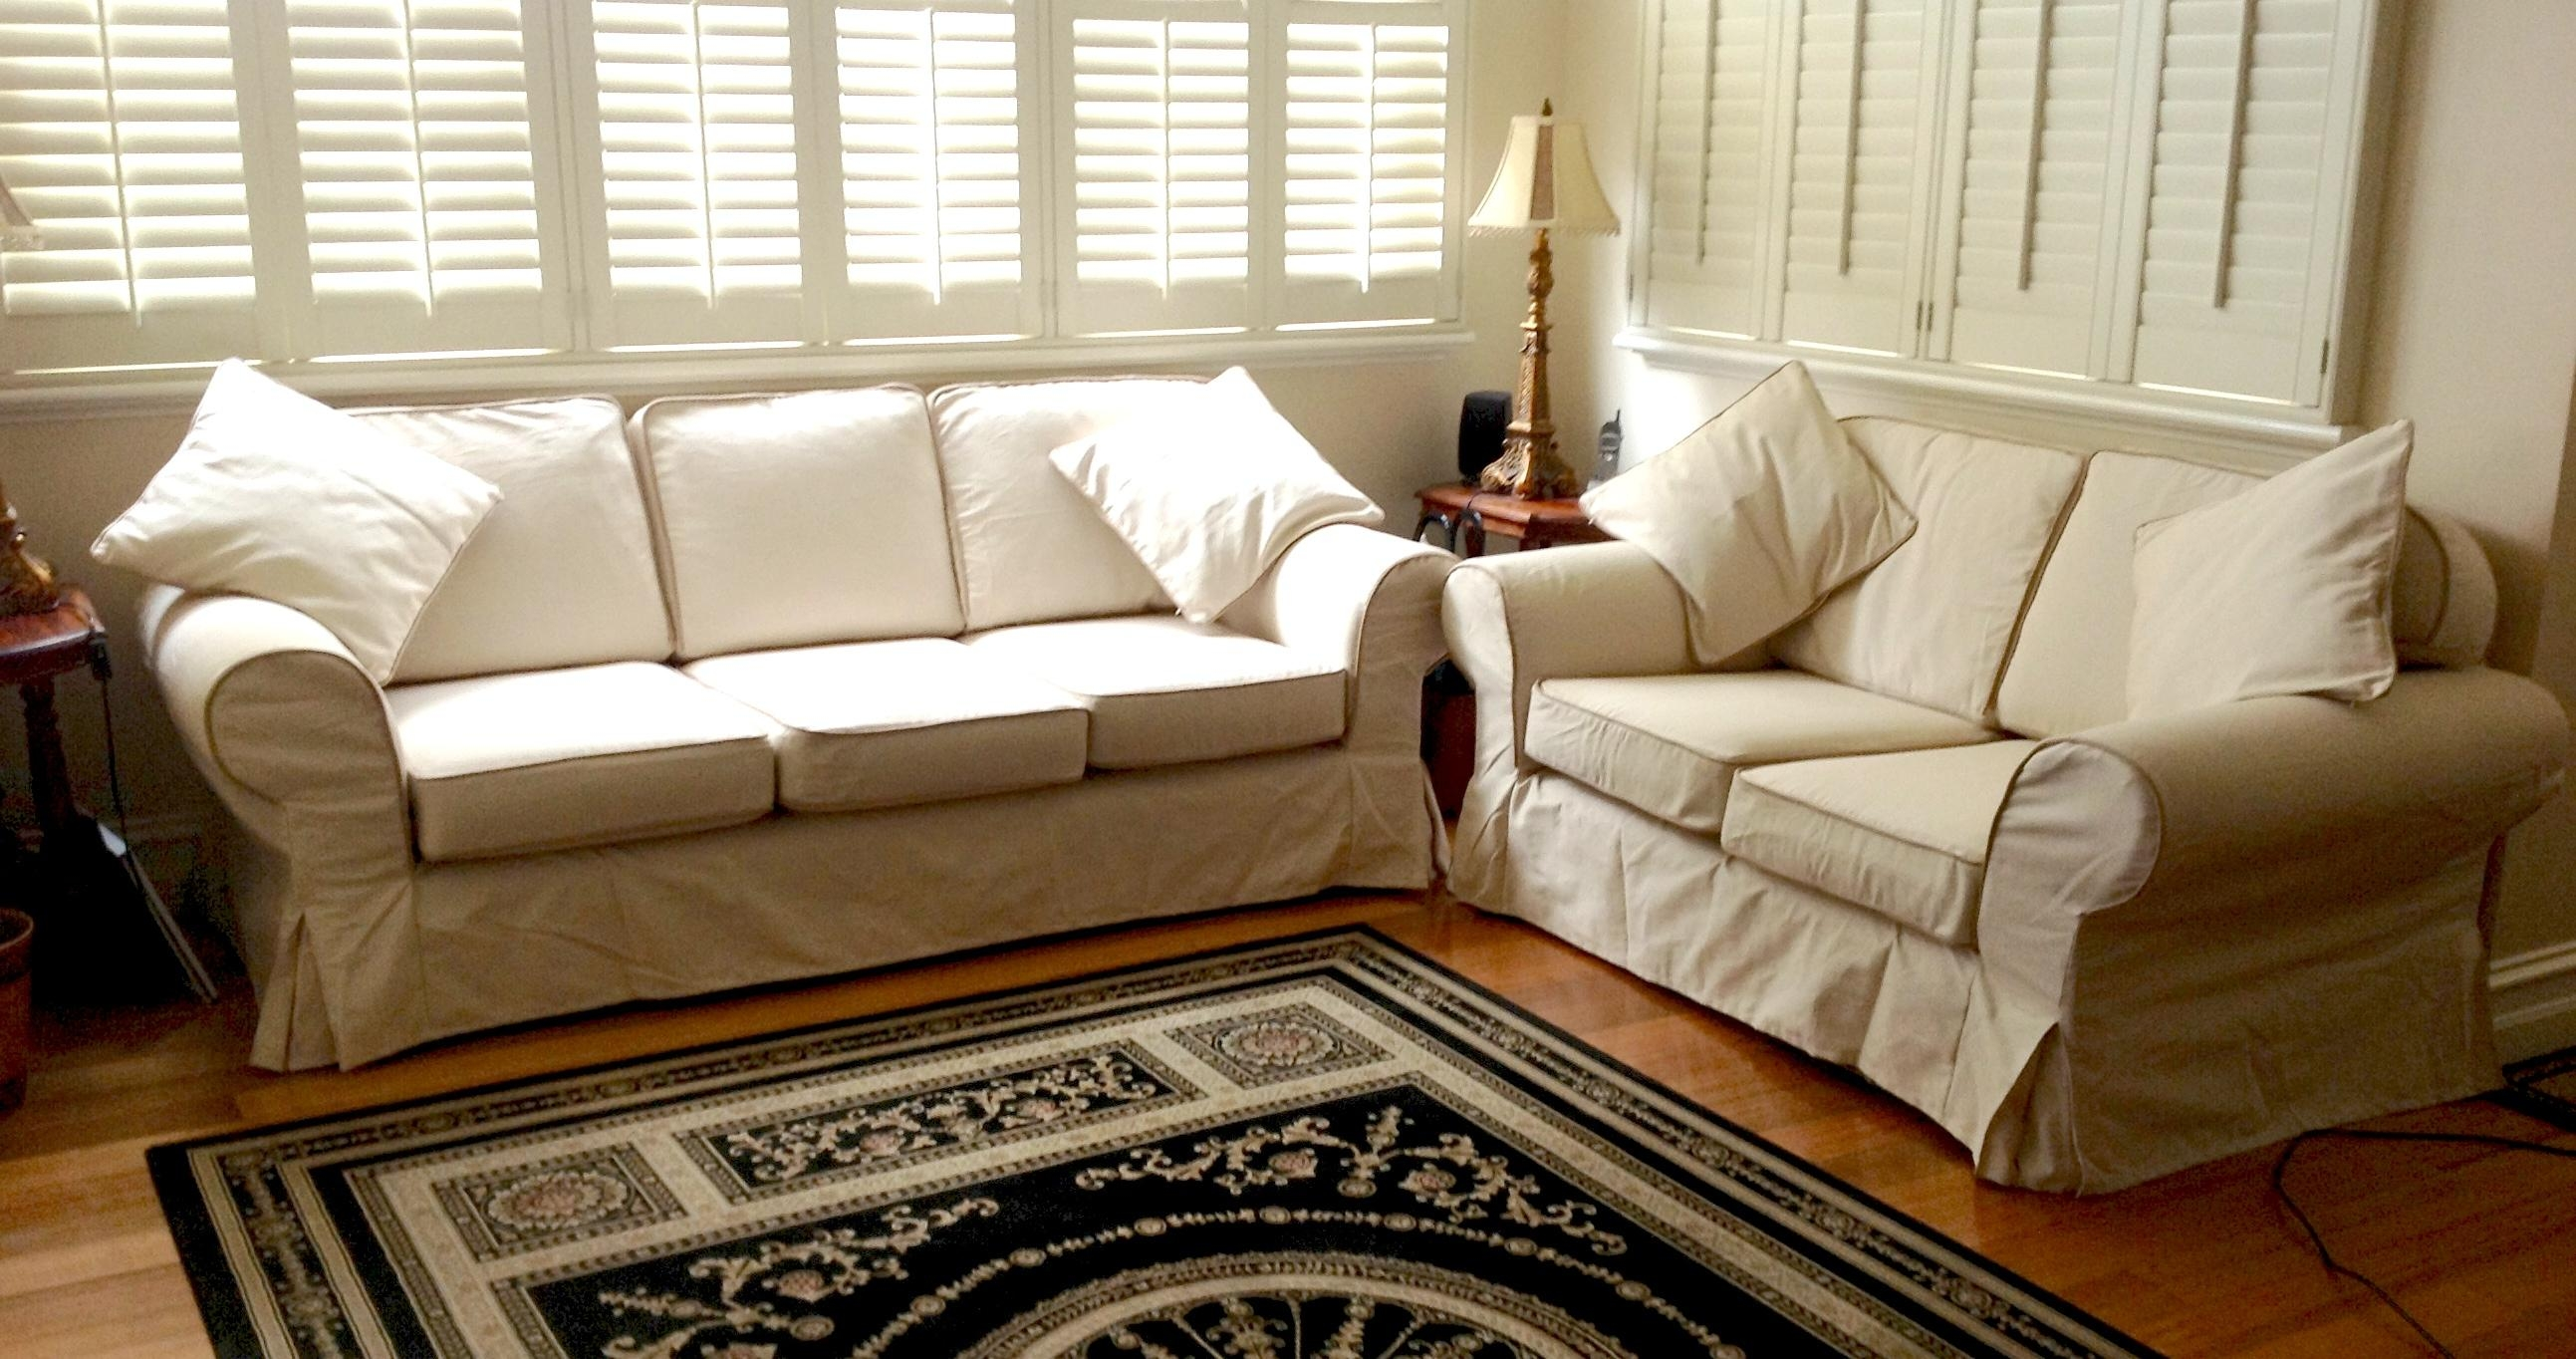 Custom Slipcovers And Couch Cover For Any Sofa Online Throughout Sofa And Loveseat Covers (Image 1 of 20)